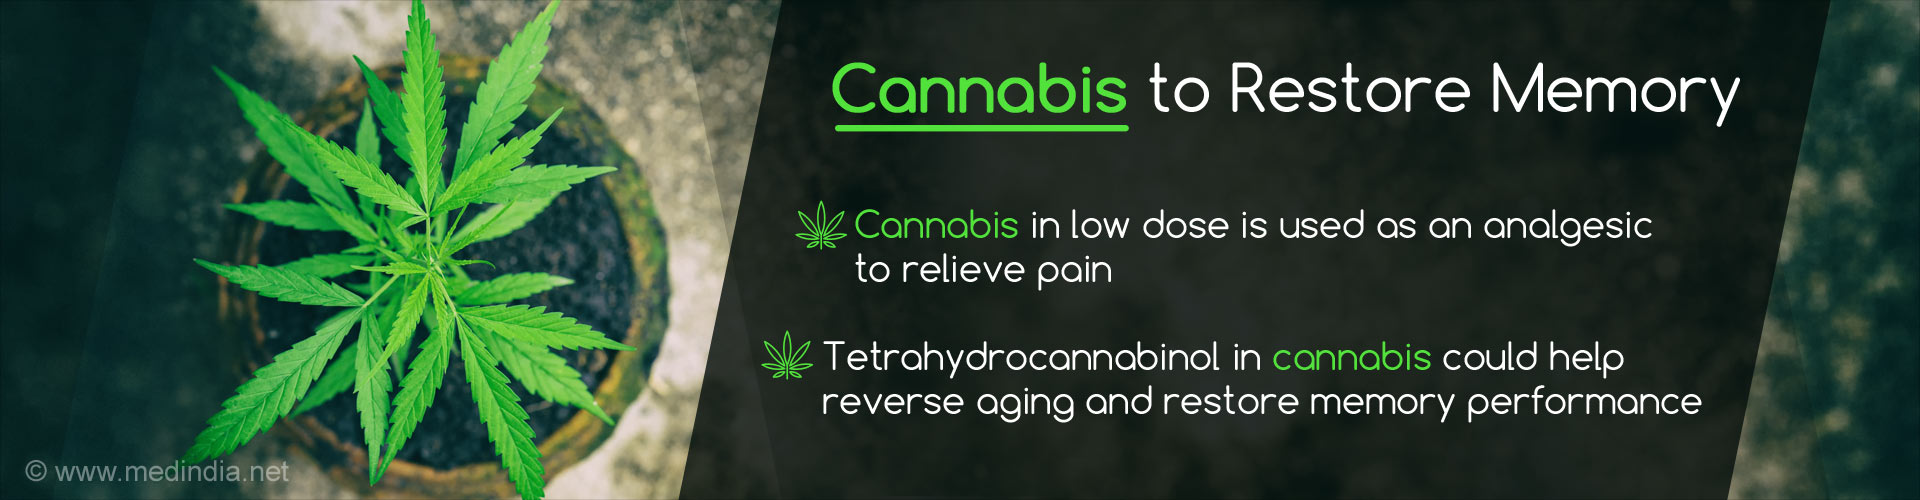 Cannabis Reverses Aging in the Brain and Improves Memory